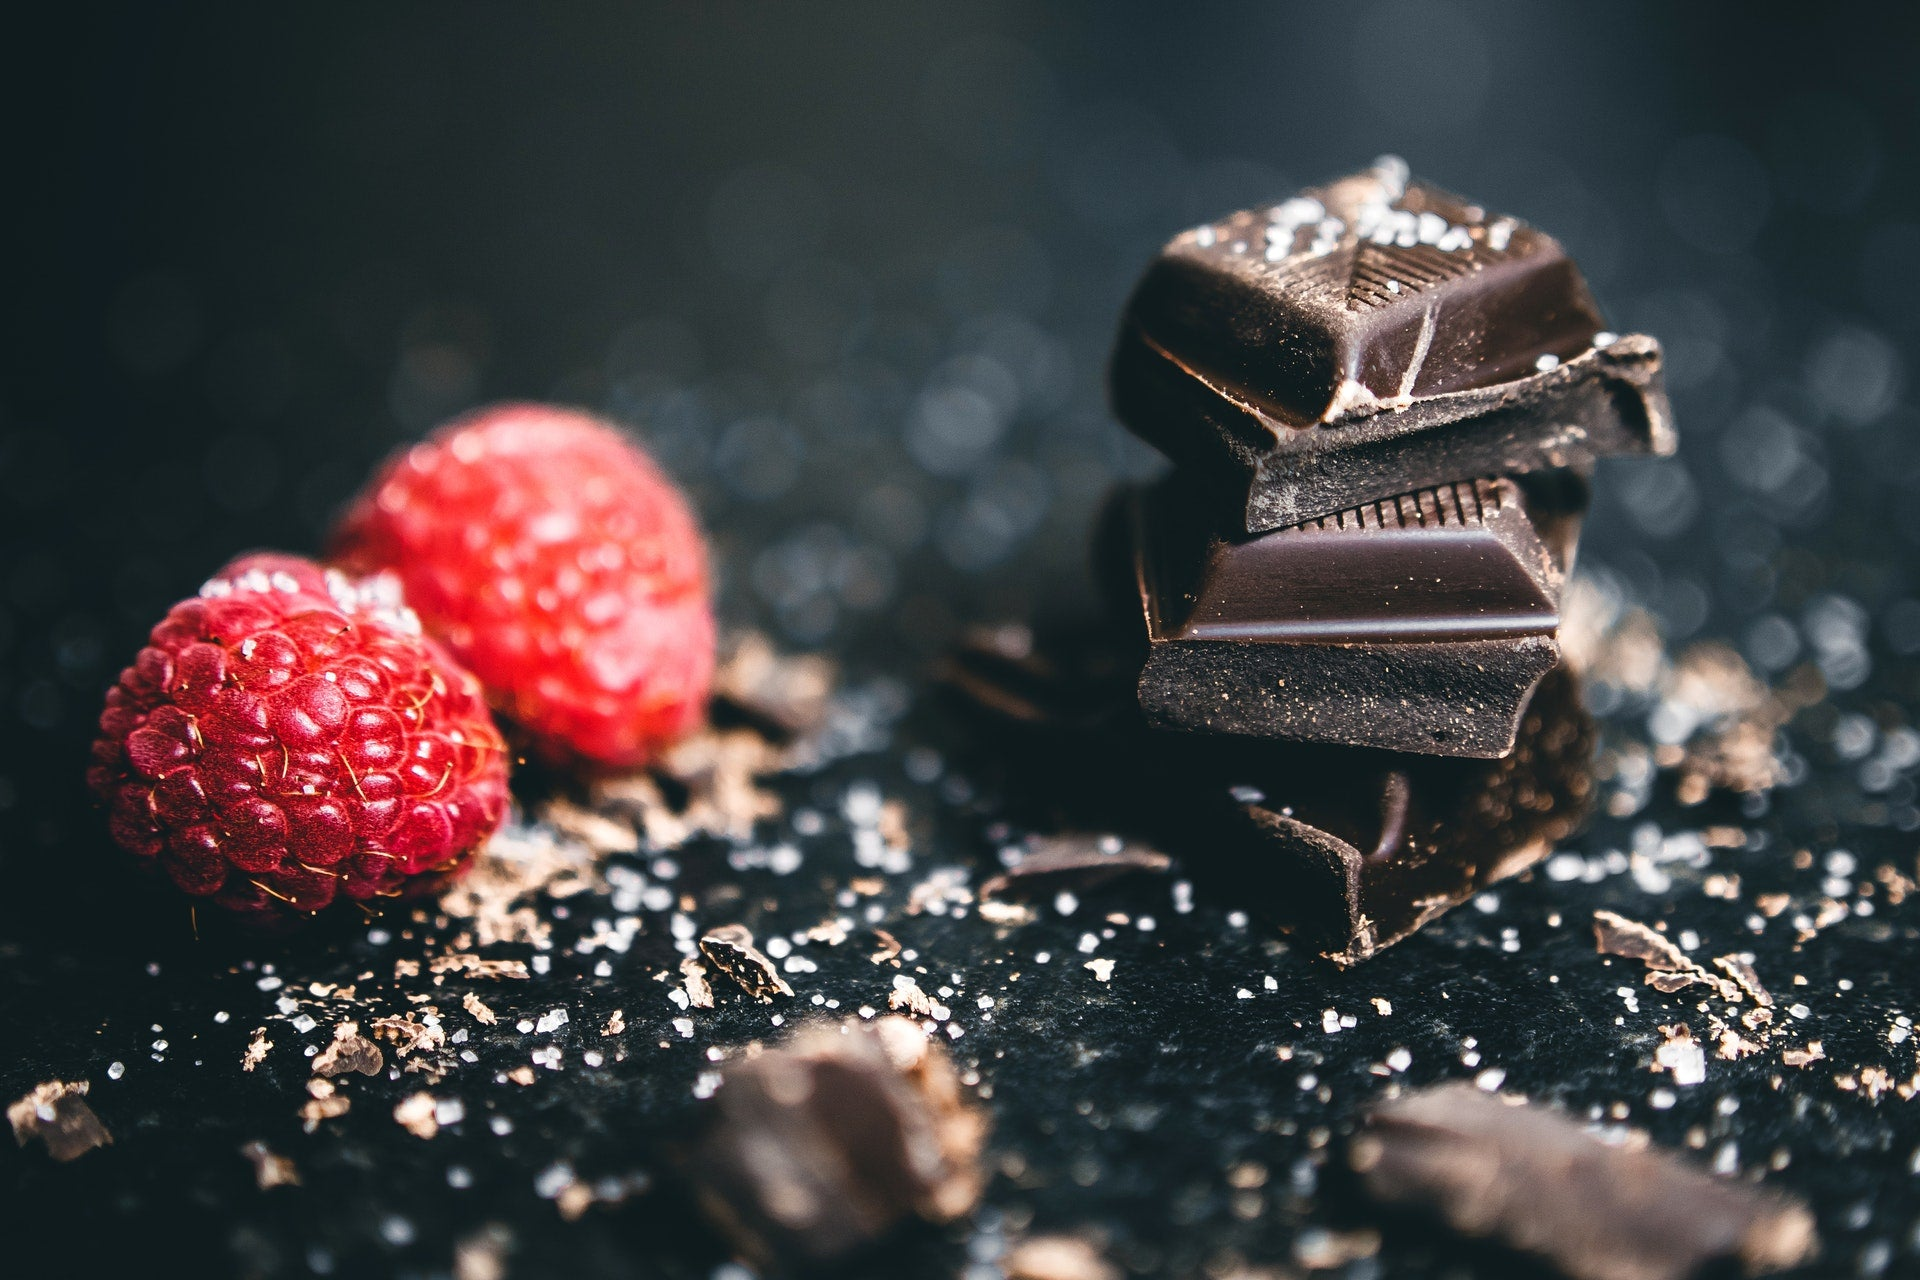 Why We Crave Chocolate